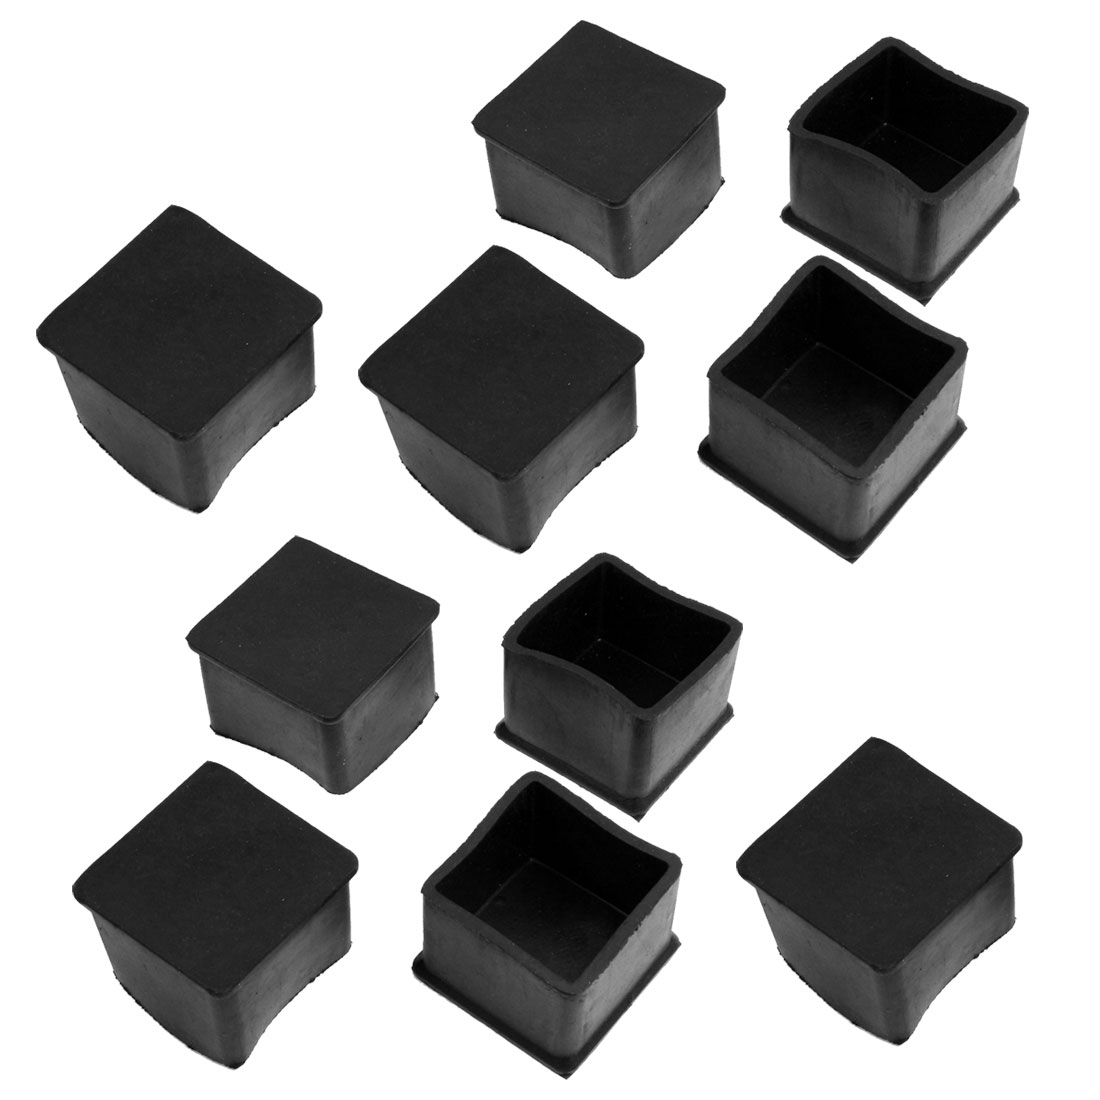 10 Pcs Black Rubber Square 40mm x 40mm Table Chair Leg Protective Foot Cap